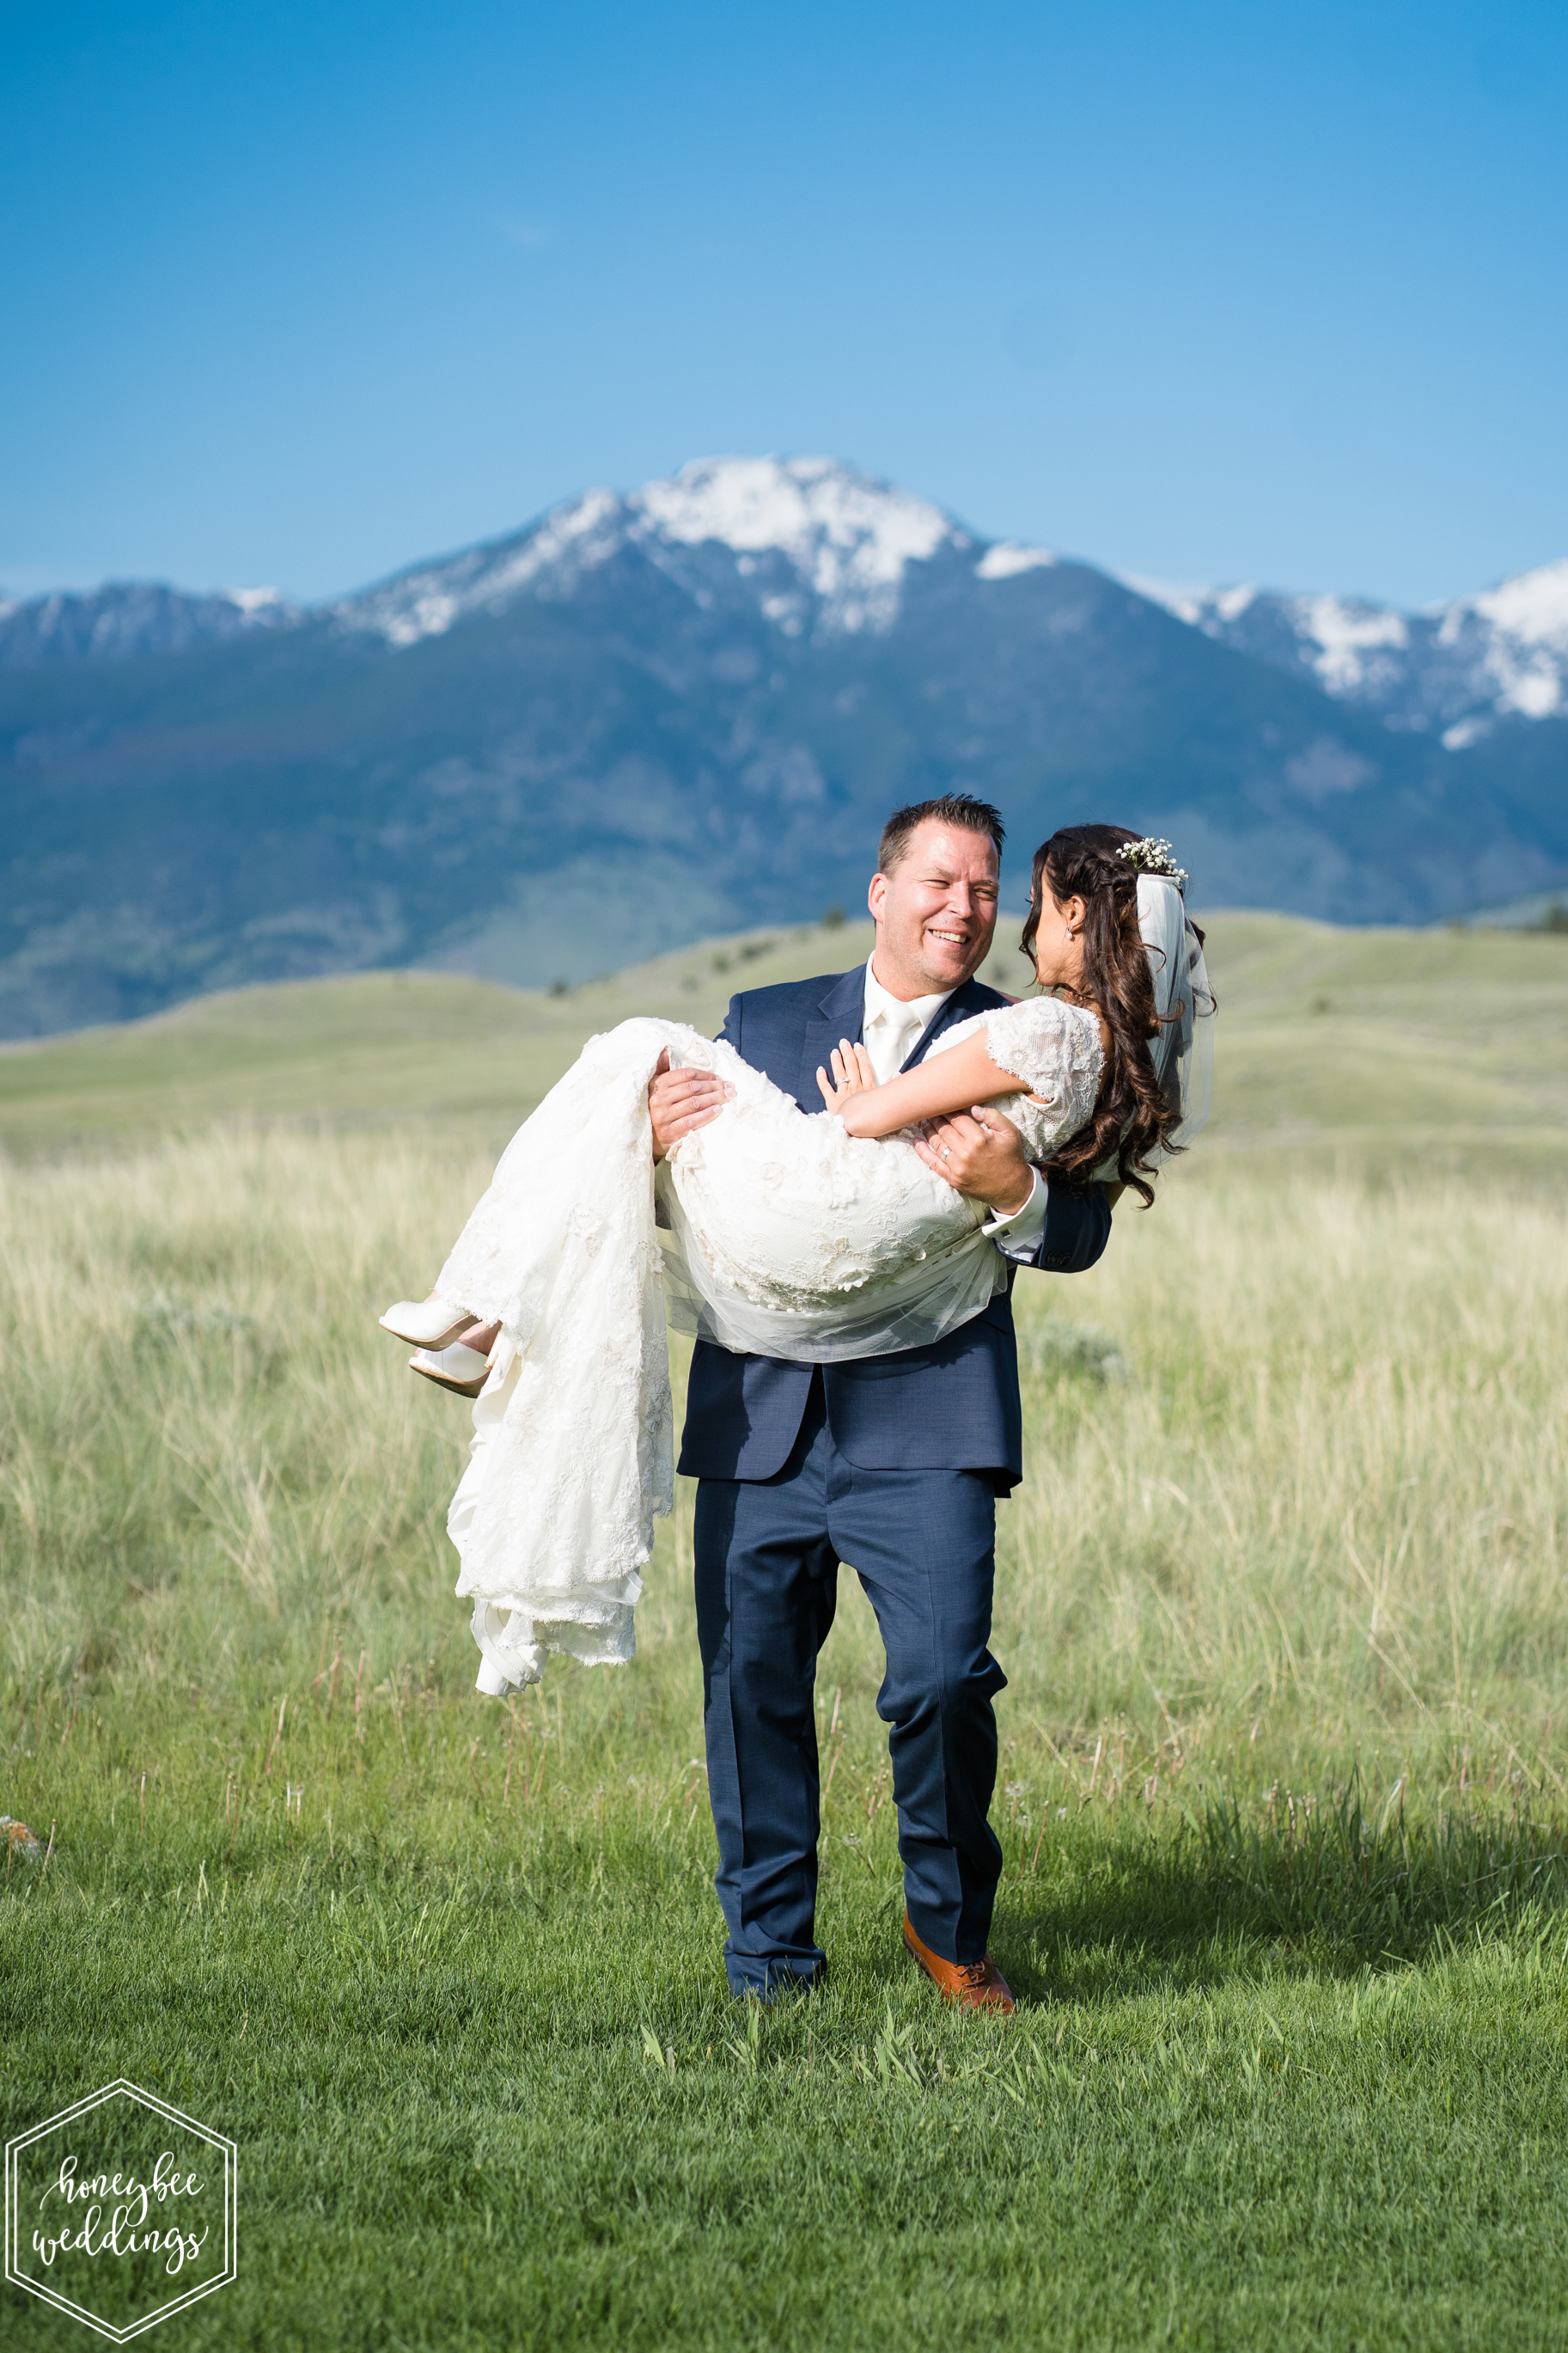 043Montana wedding photographer videographer_Chico hot springs wedding_Honeybee Weddings_Claudia & Bill_June 03, 2019-109.jpg